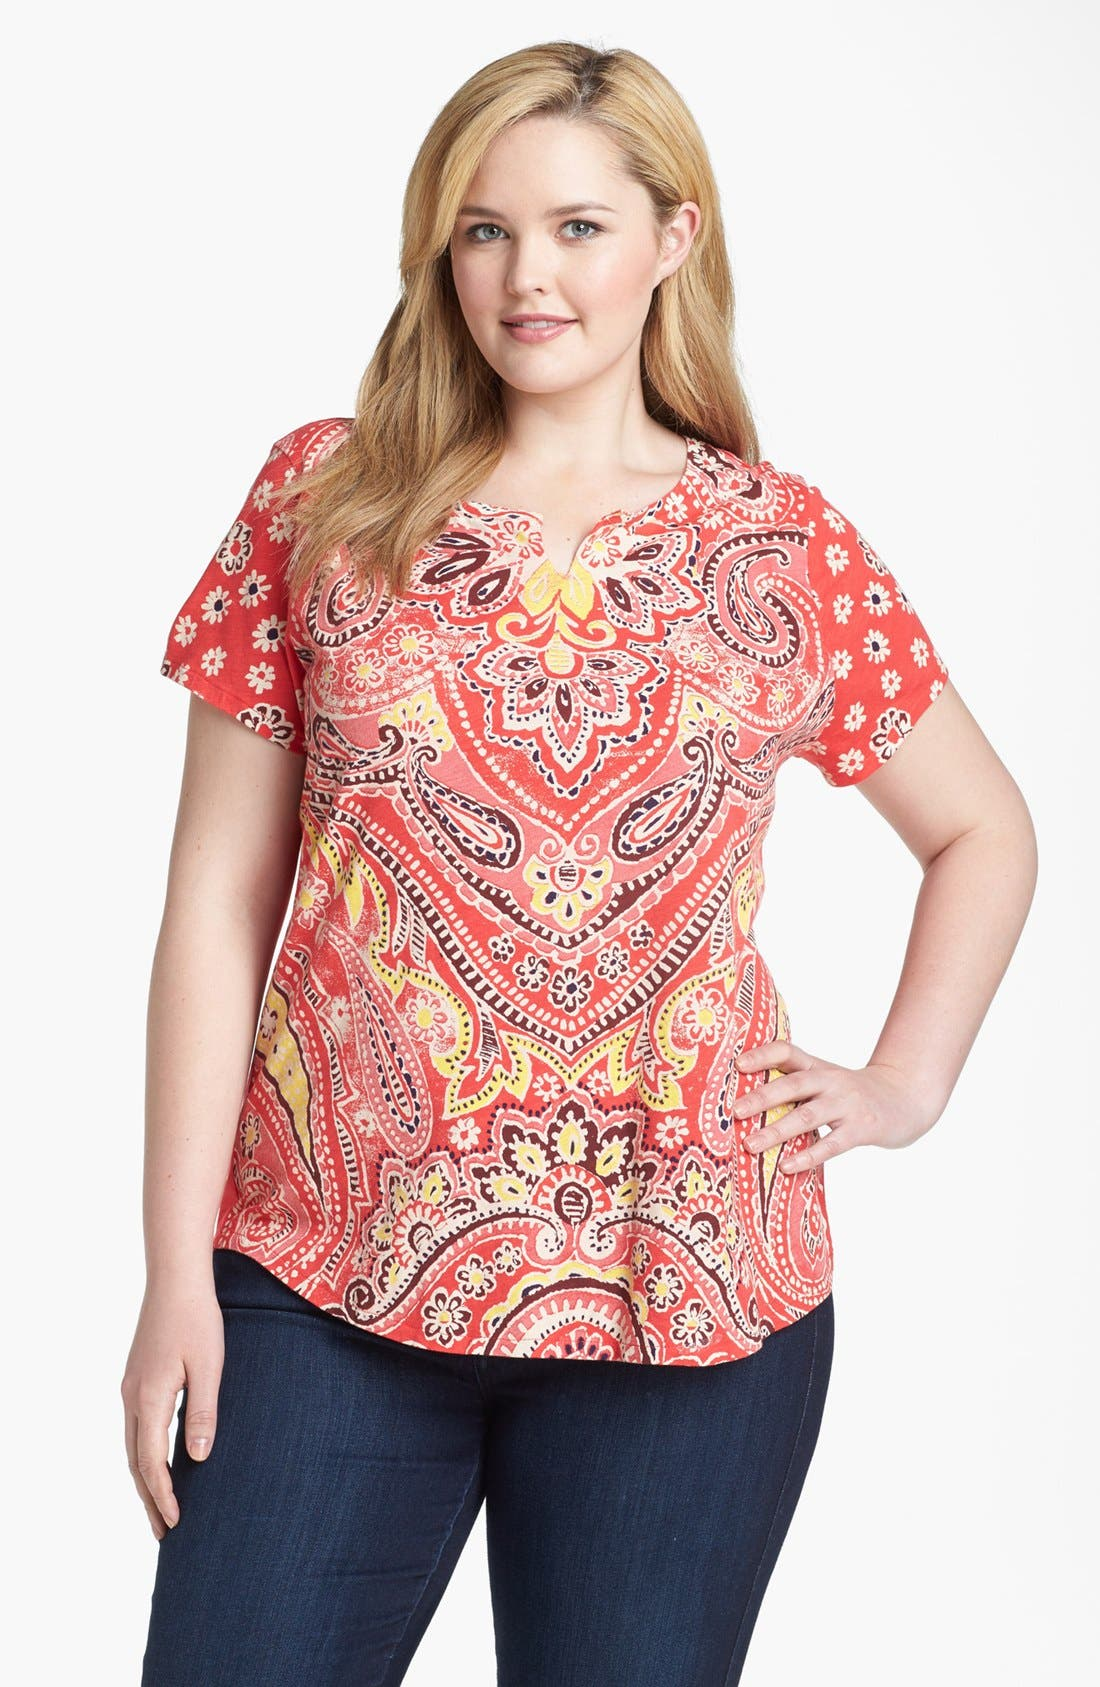 Alternate Image 1 Selected - Lucky Brand 'Lana' Mixed Print Tee (Plus Size)